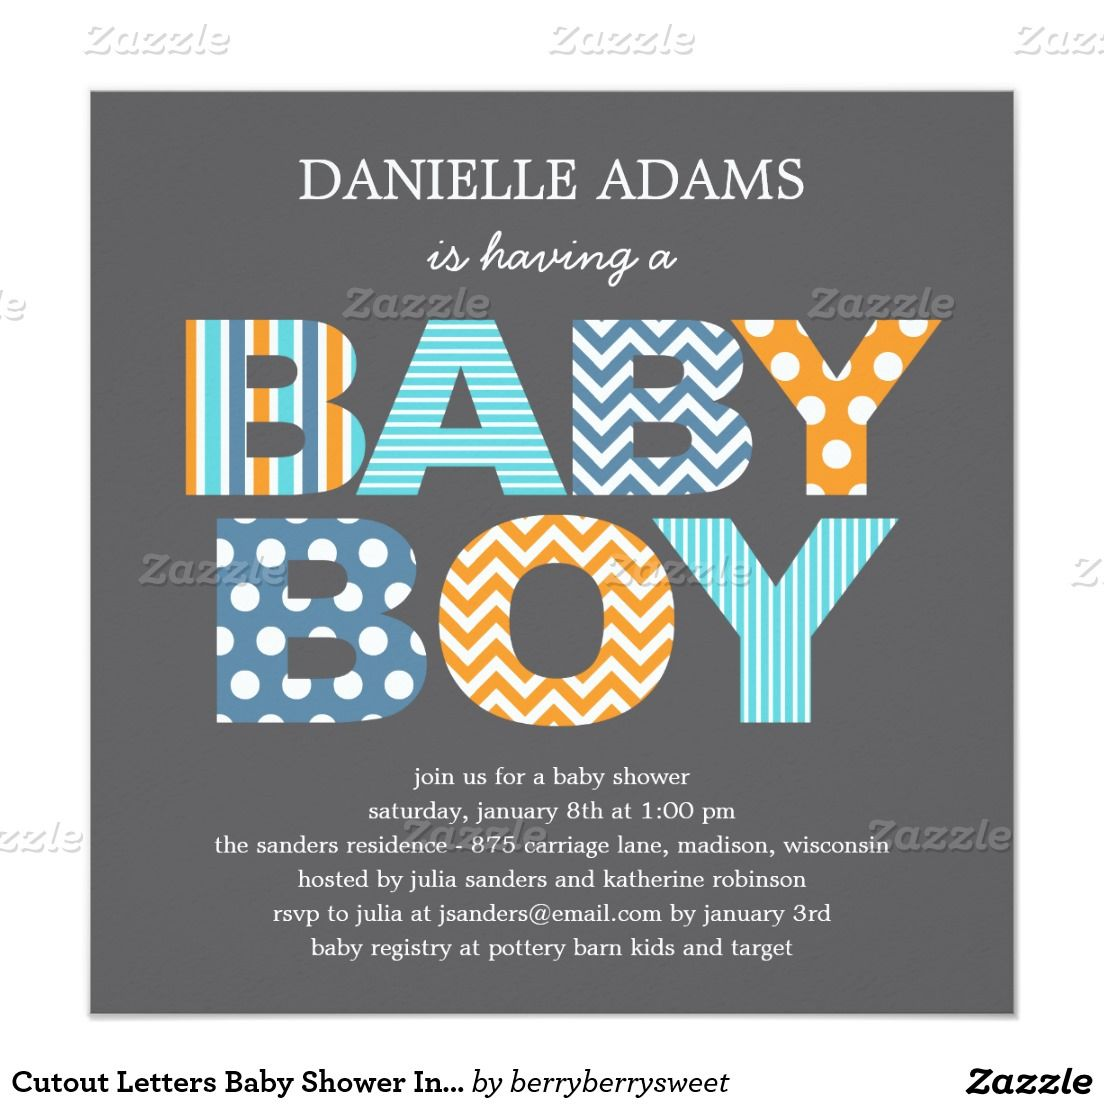 Cutout Letters Baby Shower Invitation  Boy  Shower Invitations